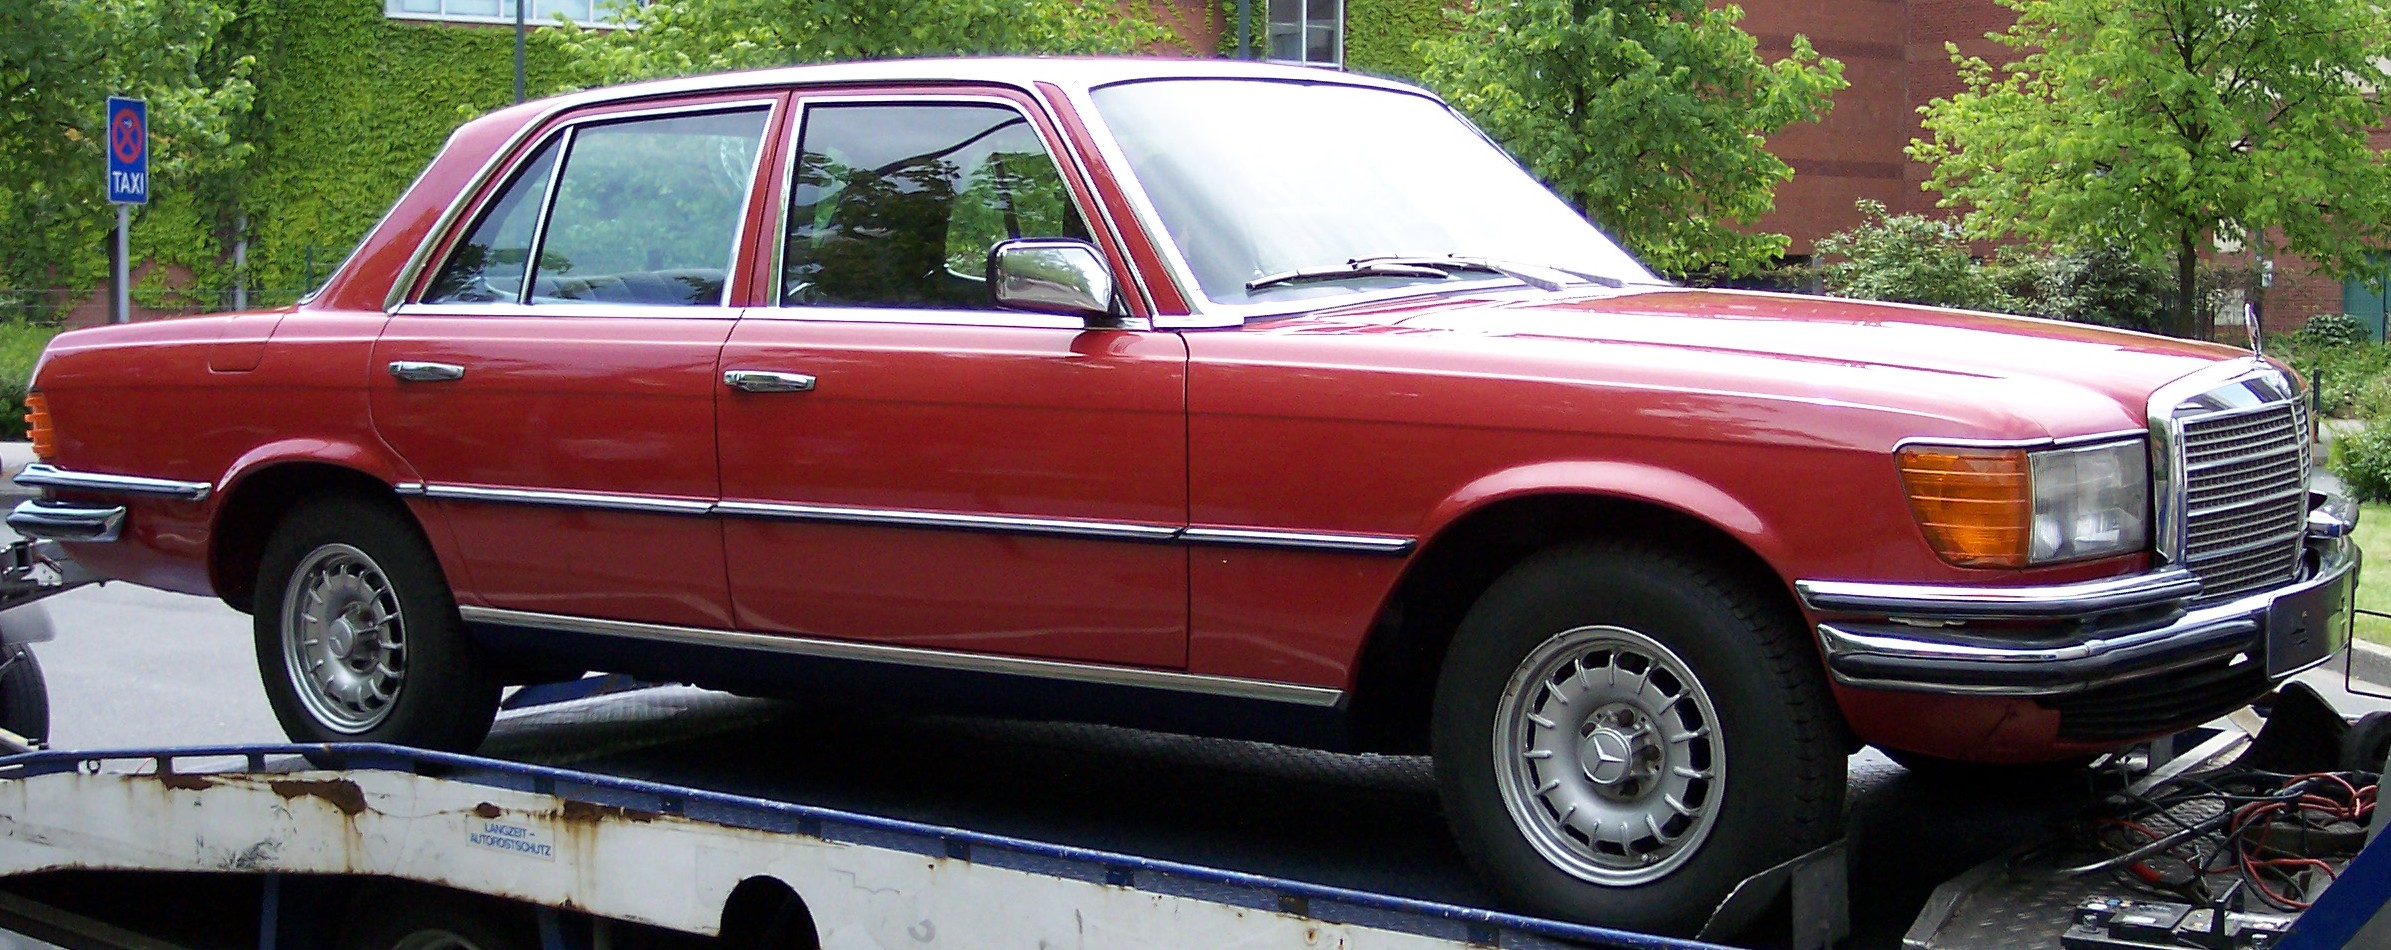 Datei mercedes benz w116 red wikipedia for Mercedes benz of louisville